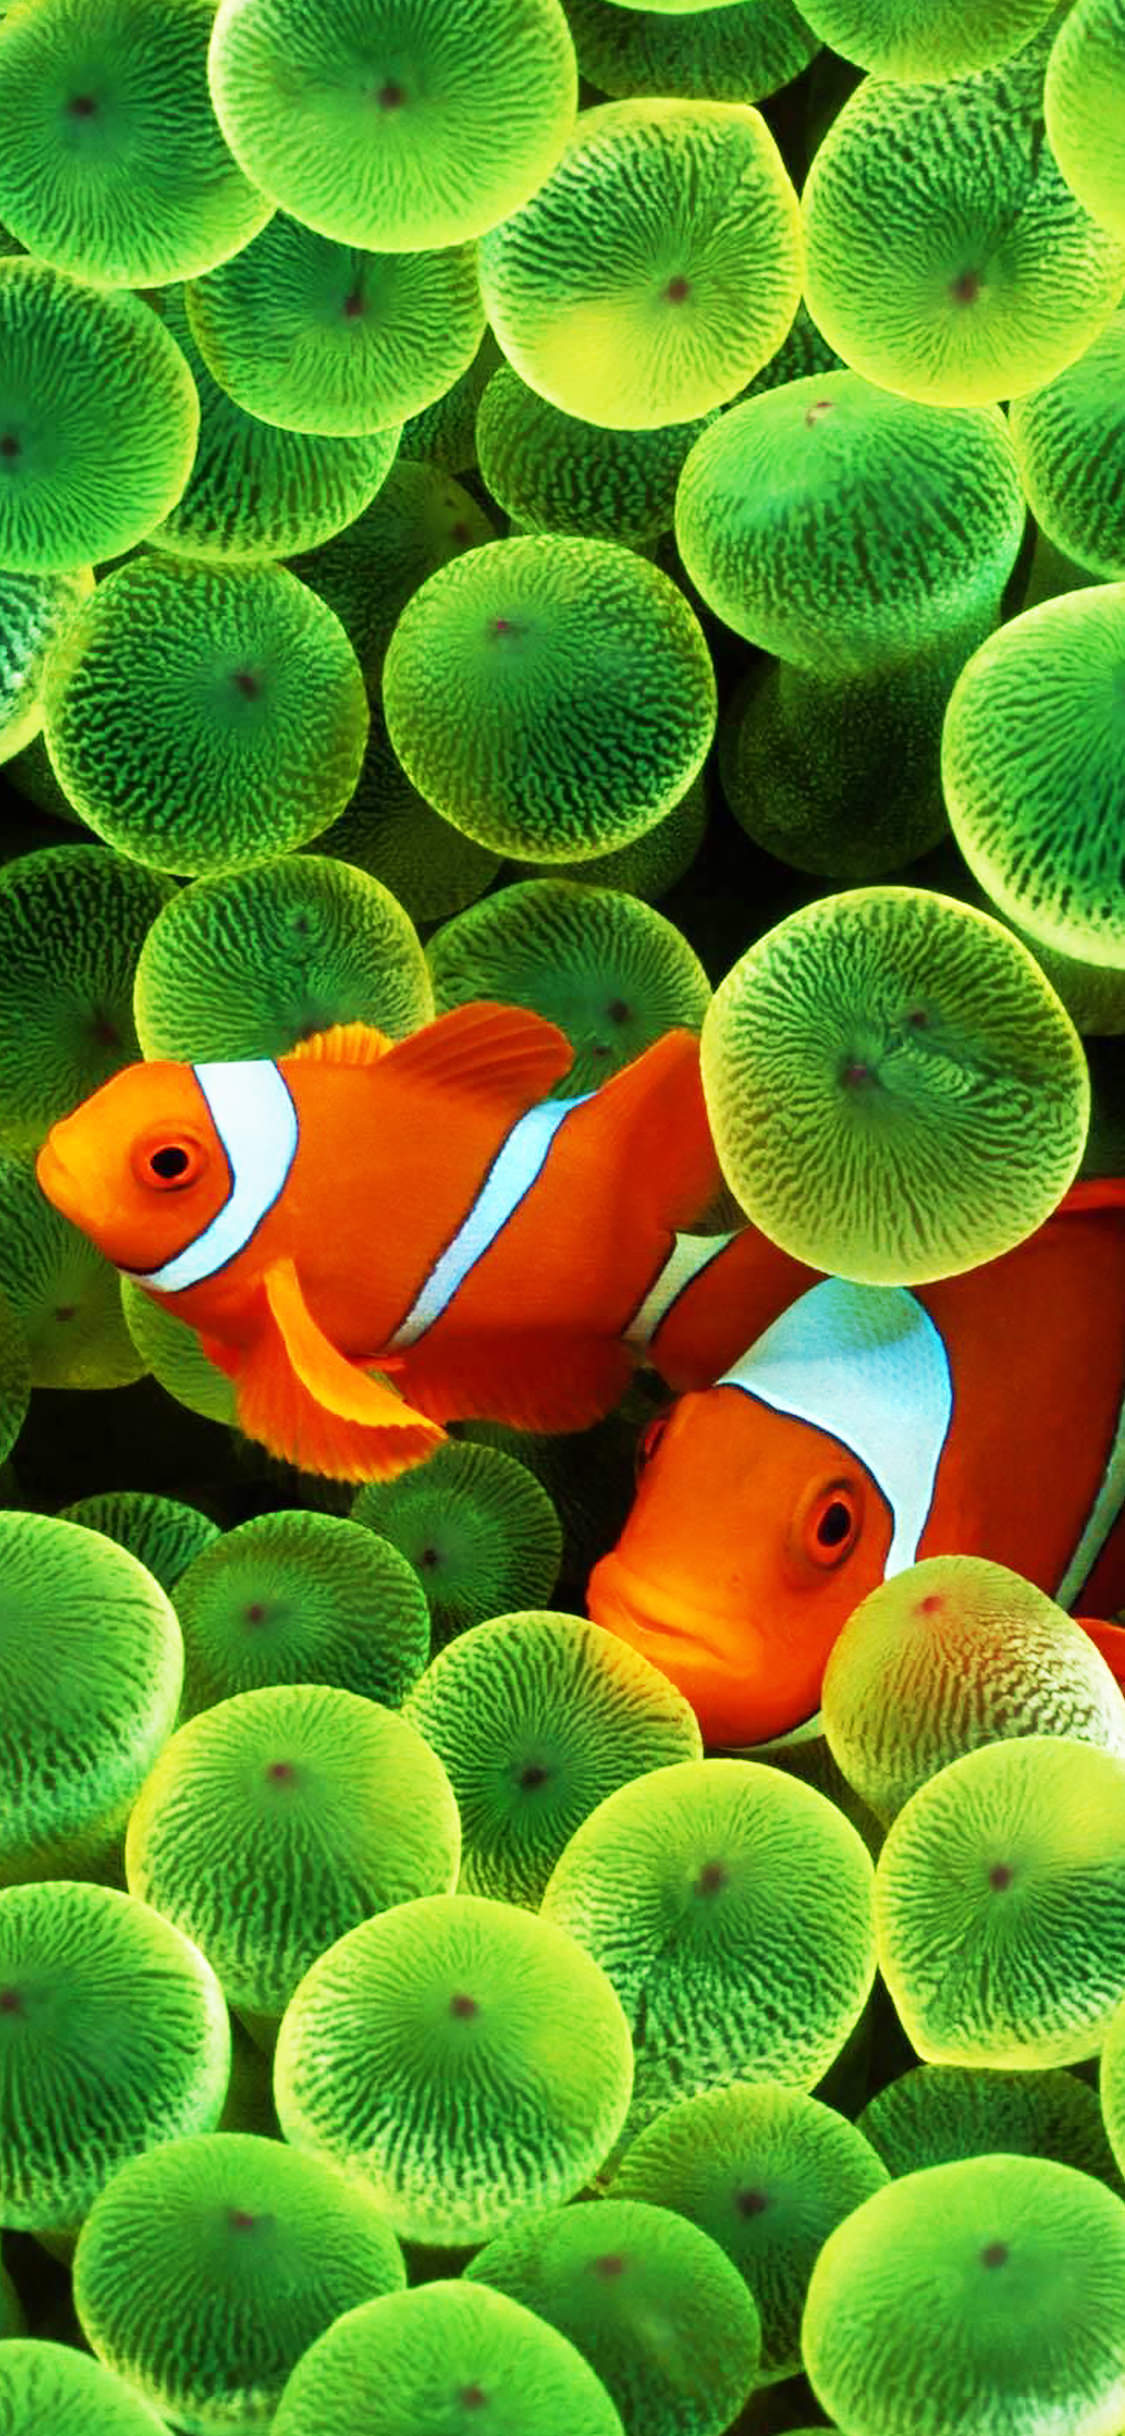 Apple Clownfish Wallpaper Iphone X The Best Wallpapers For Iphone X Timothy Buck